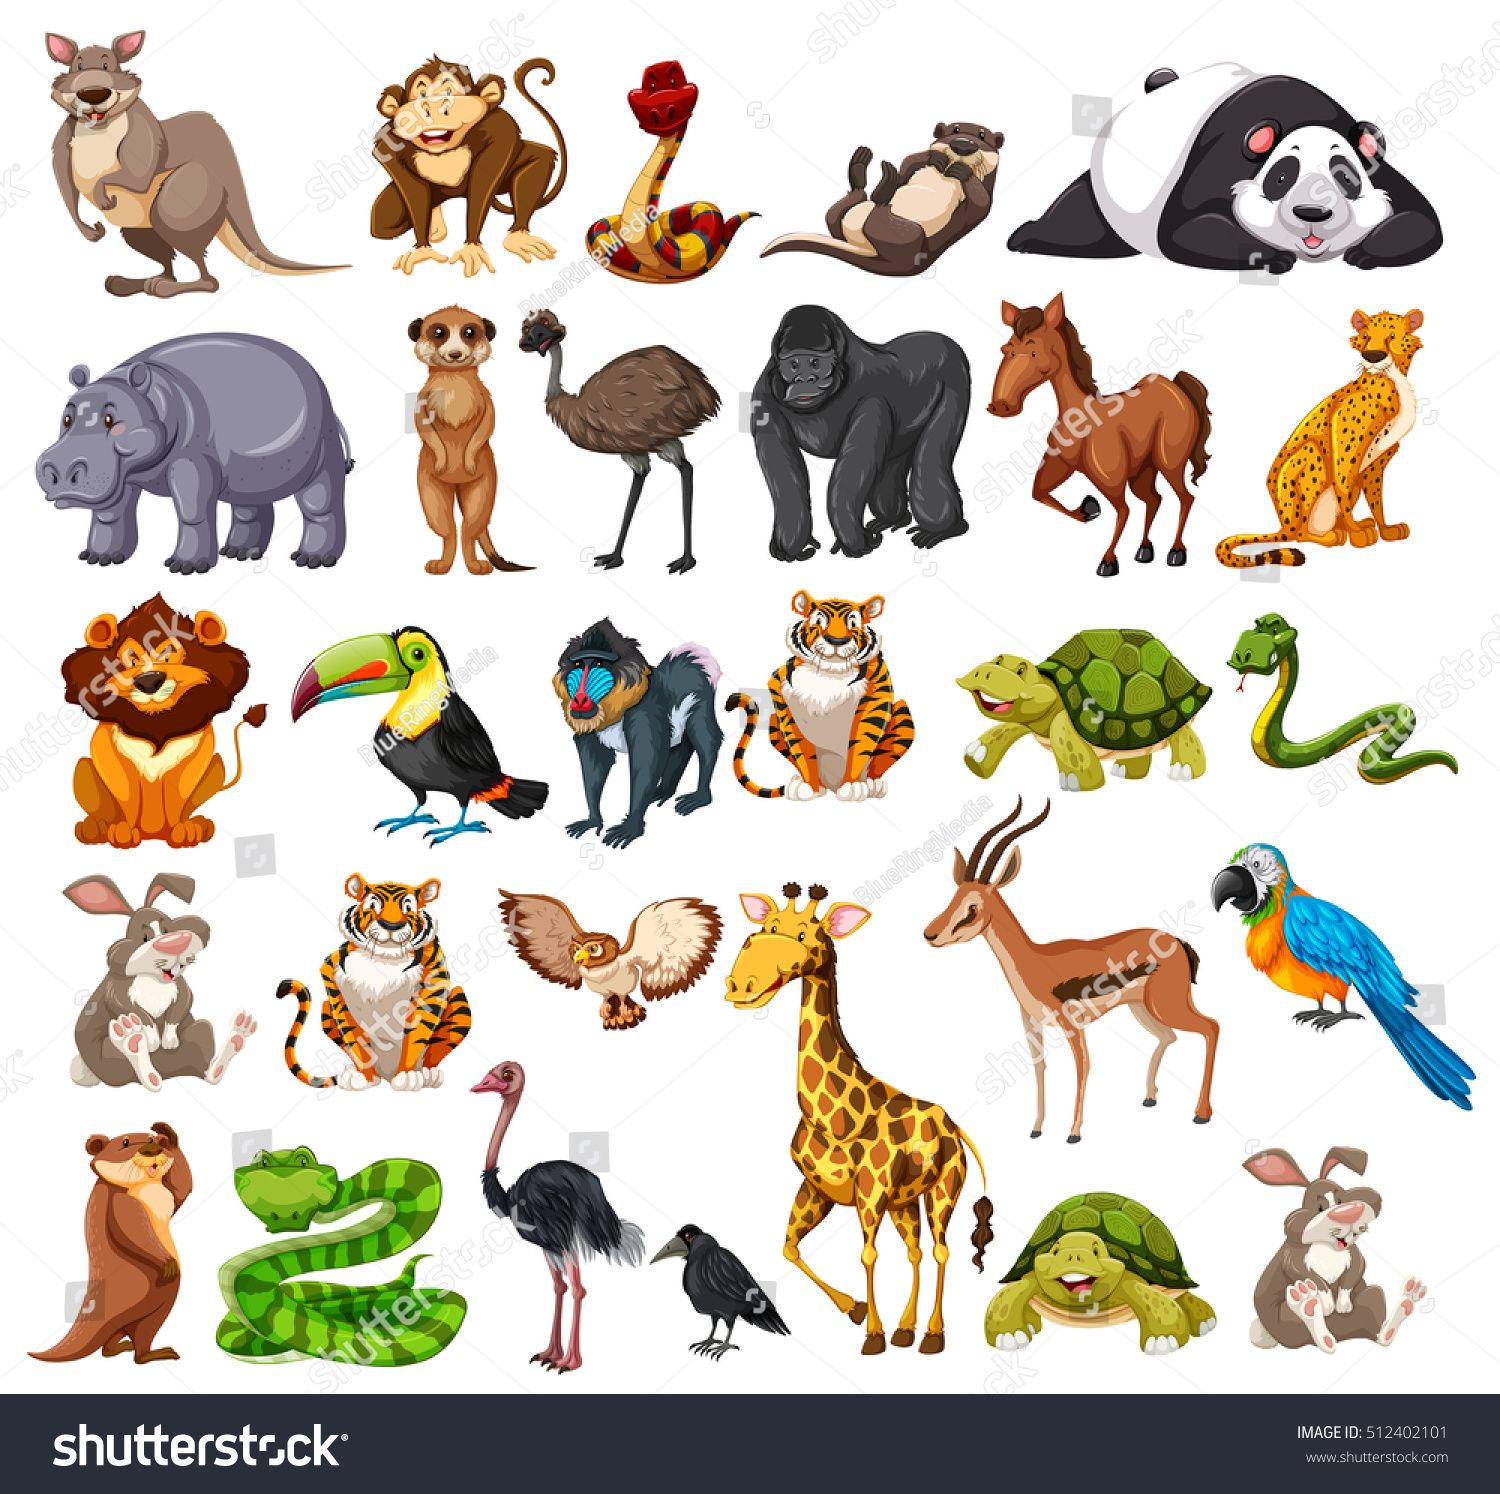 Different types of wild animals on white illustration image vector ...